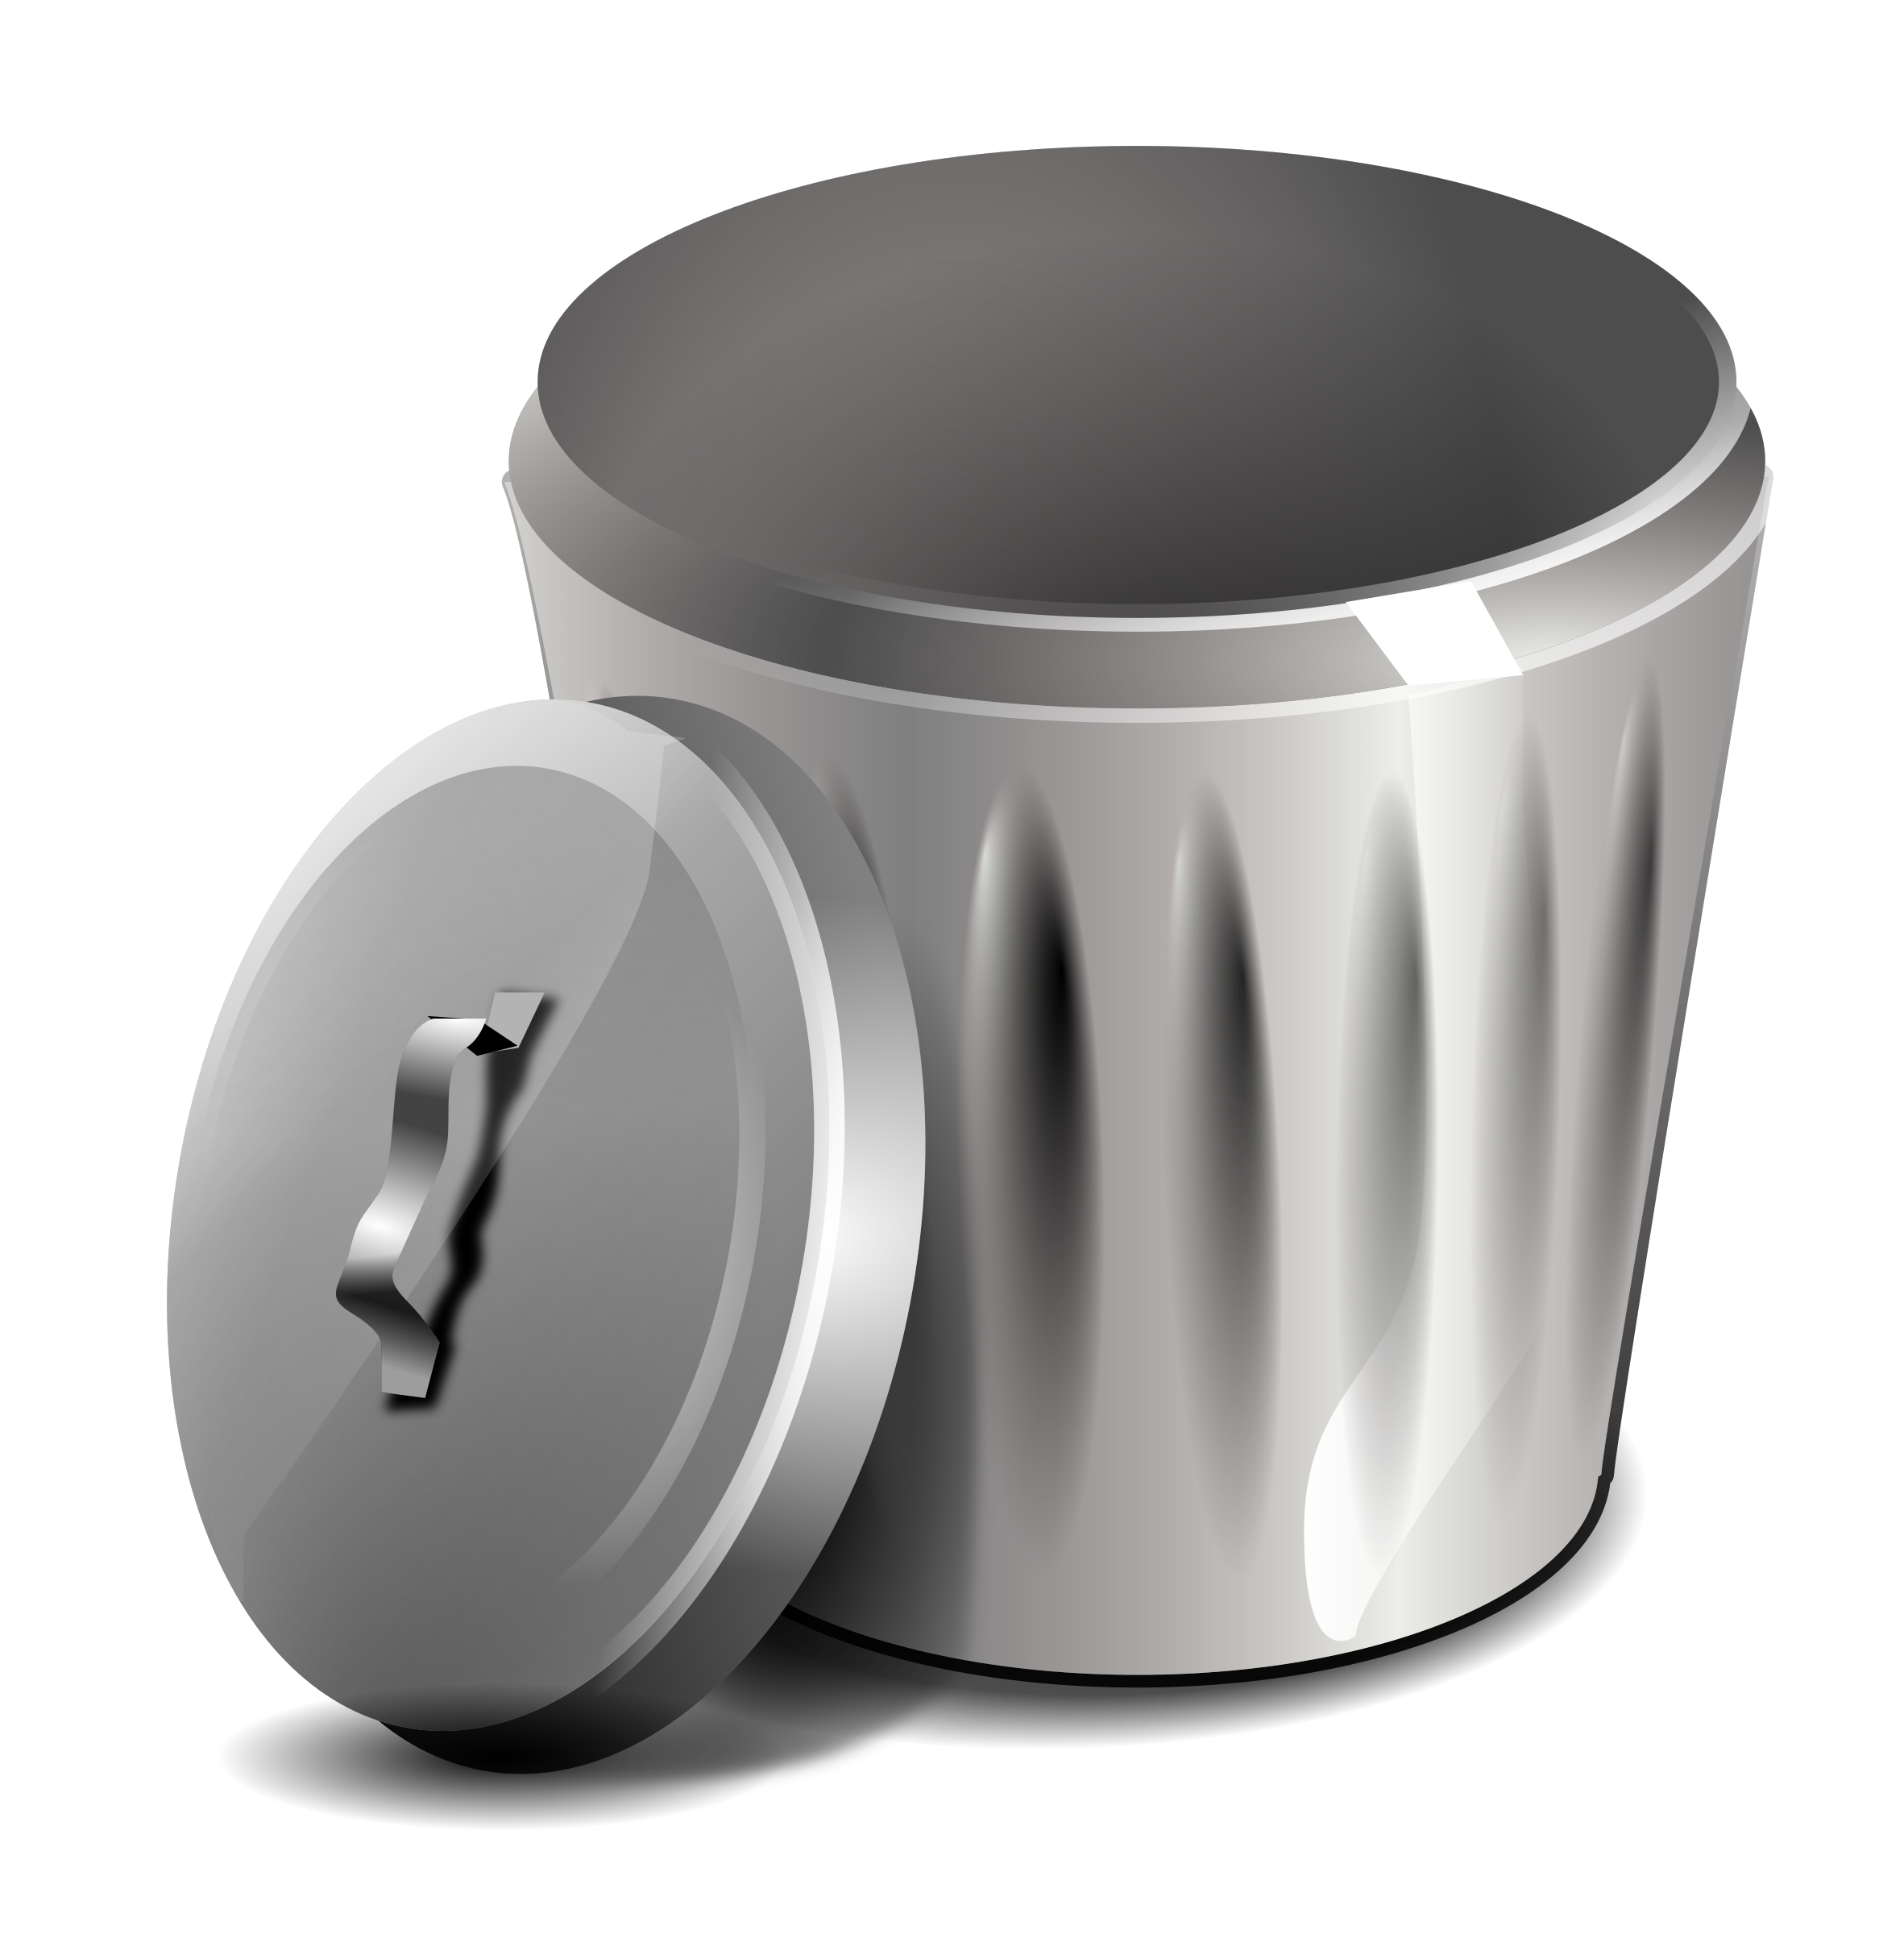 Trash By Hrum Trash Can Housekeeping Tips Diy Home Automation